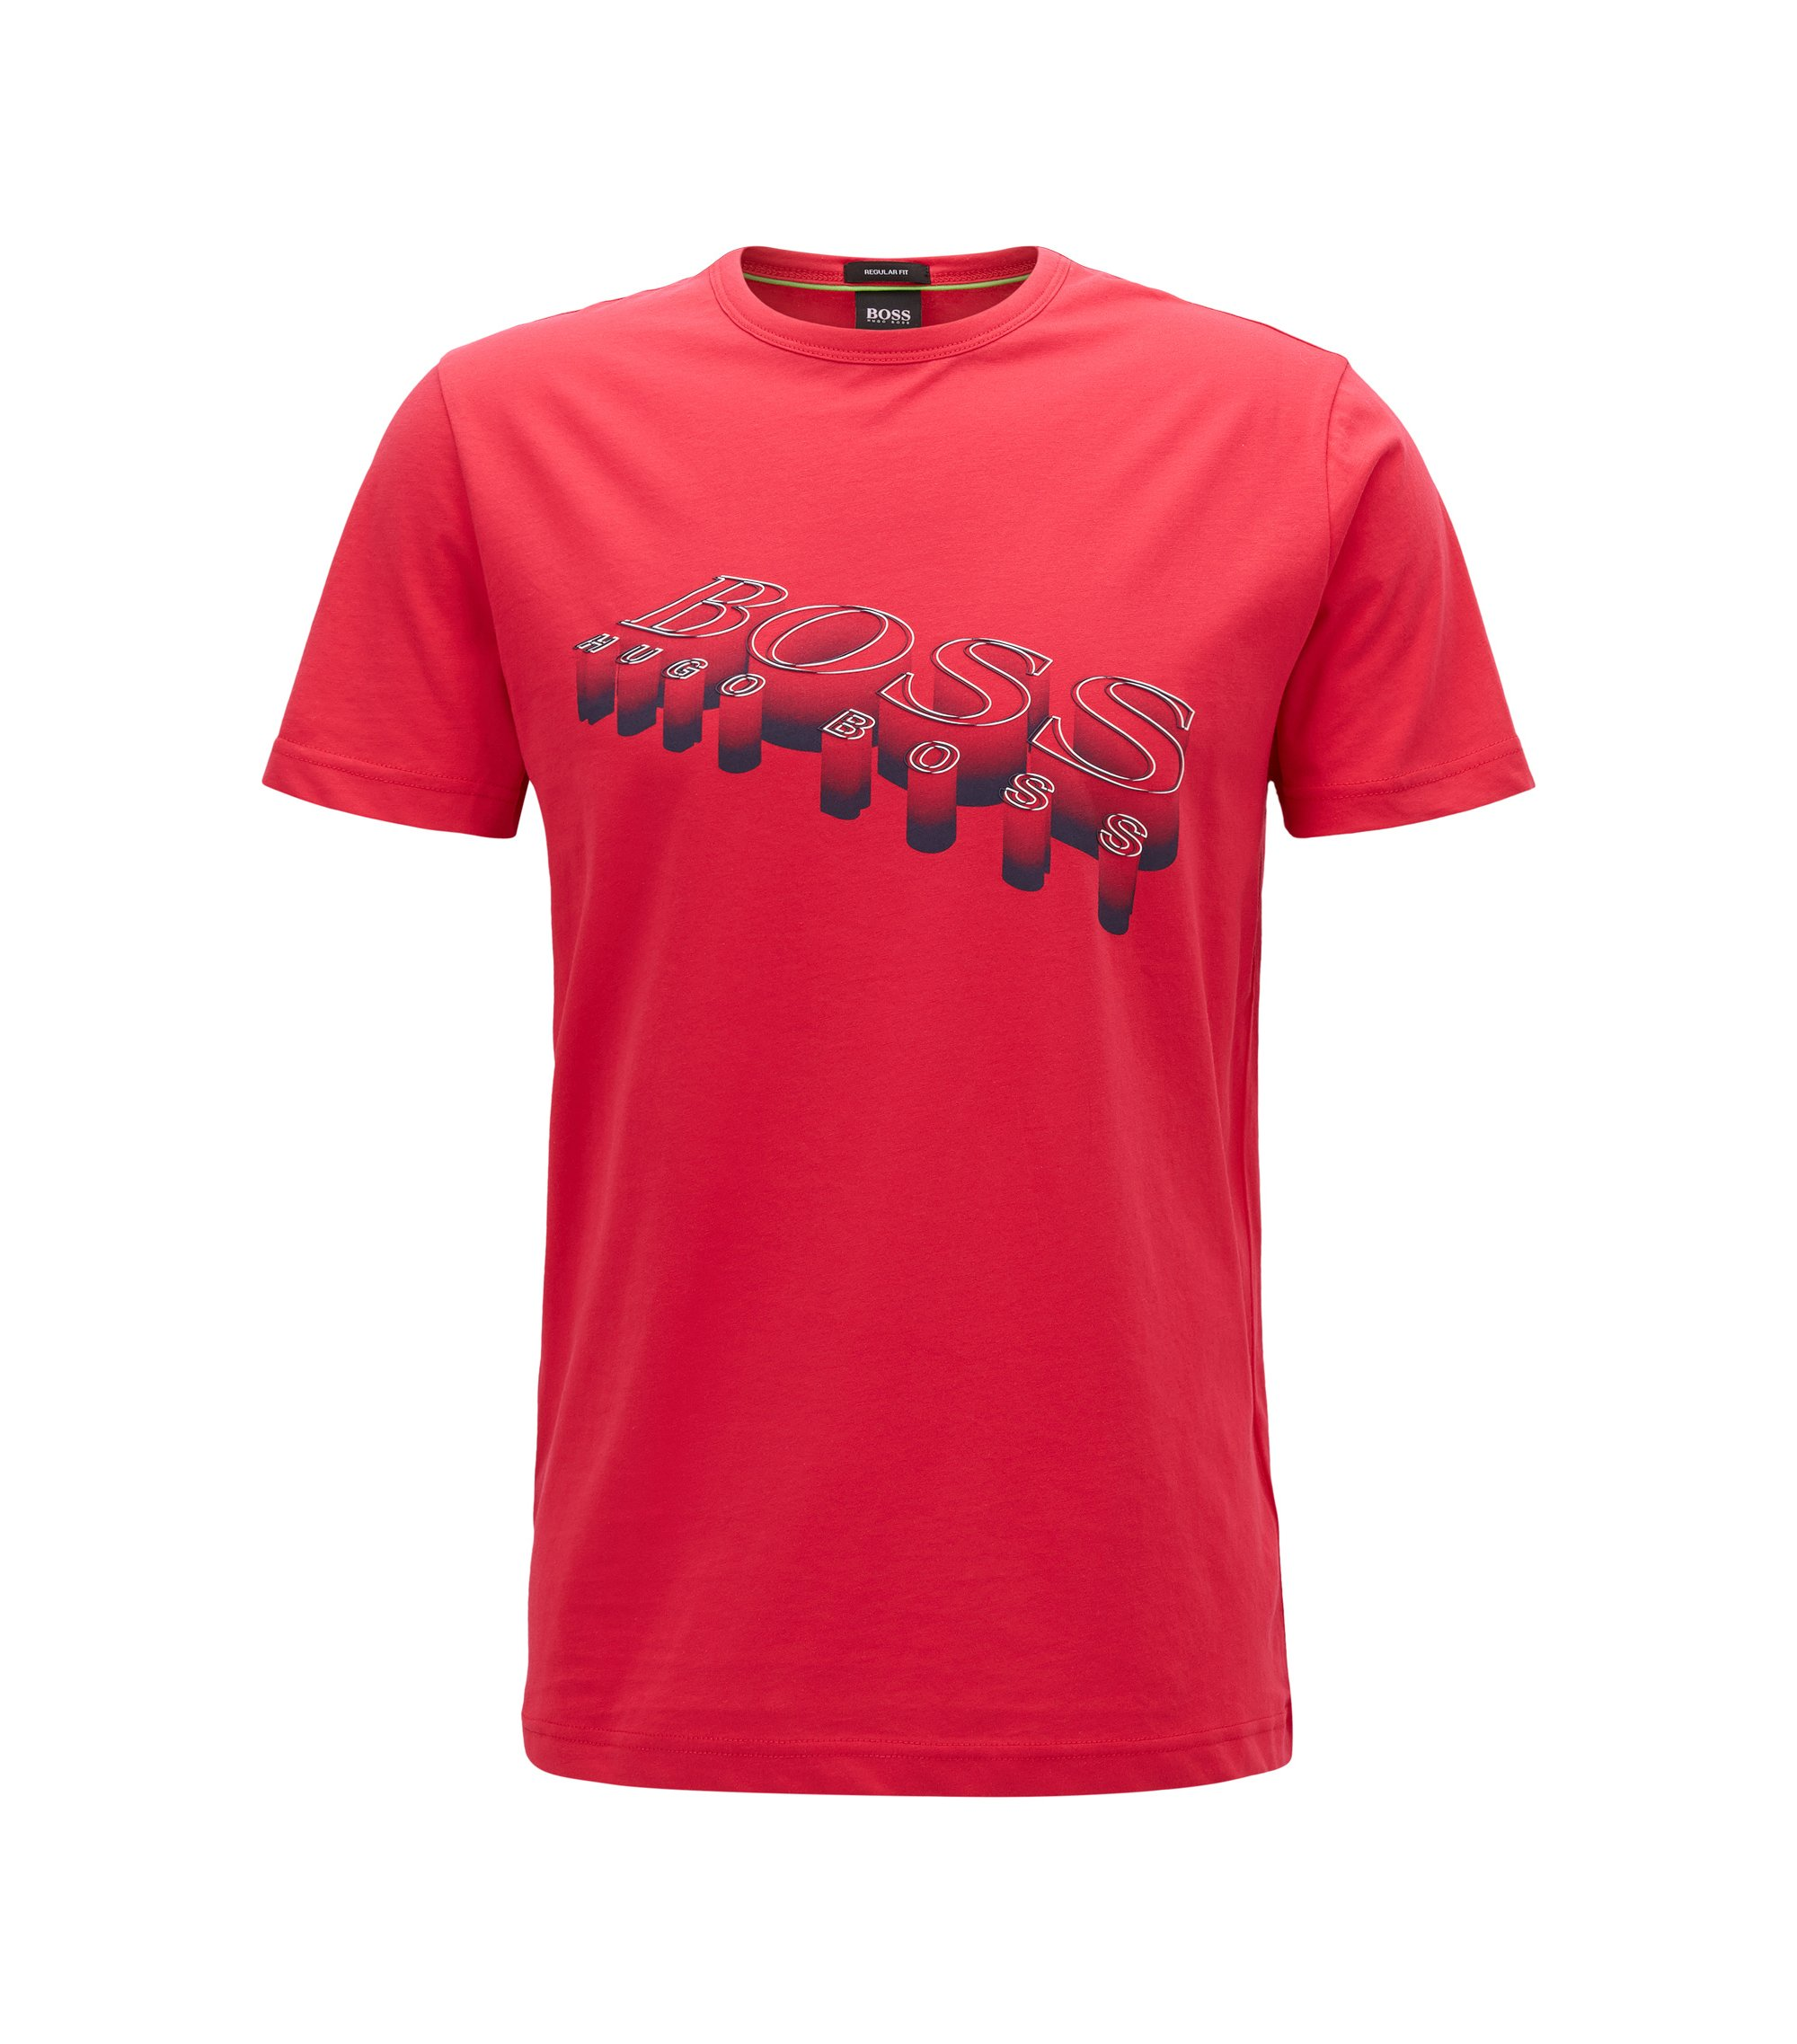 Regular-Fit T-Shirt aus softer Baumwolle mit 3D-Logo, Rot